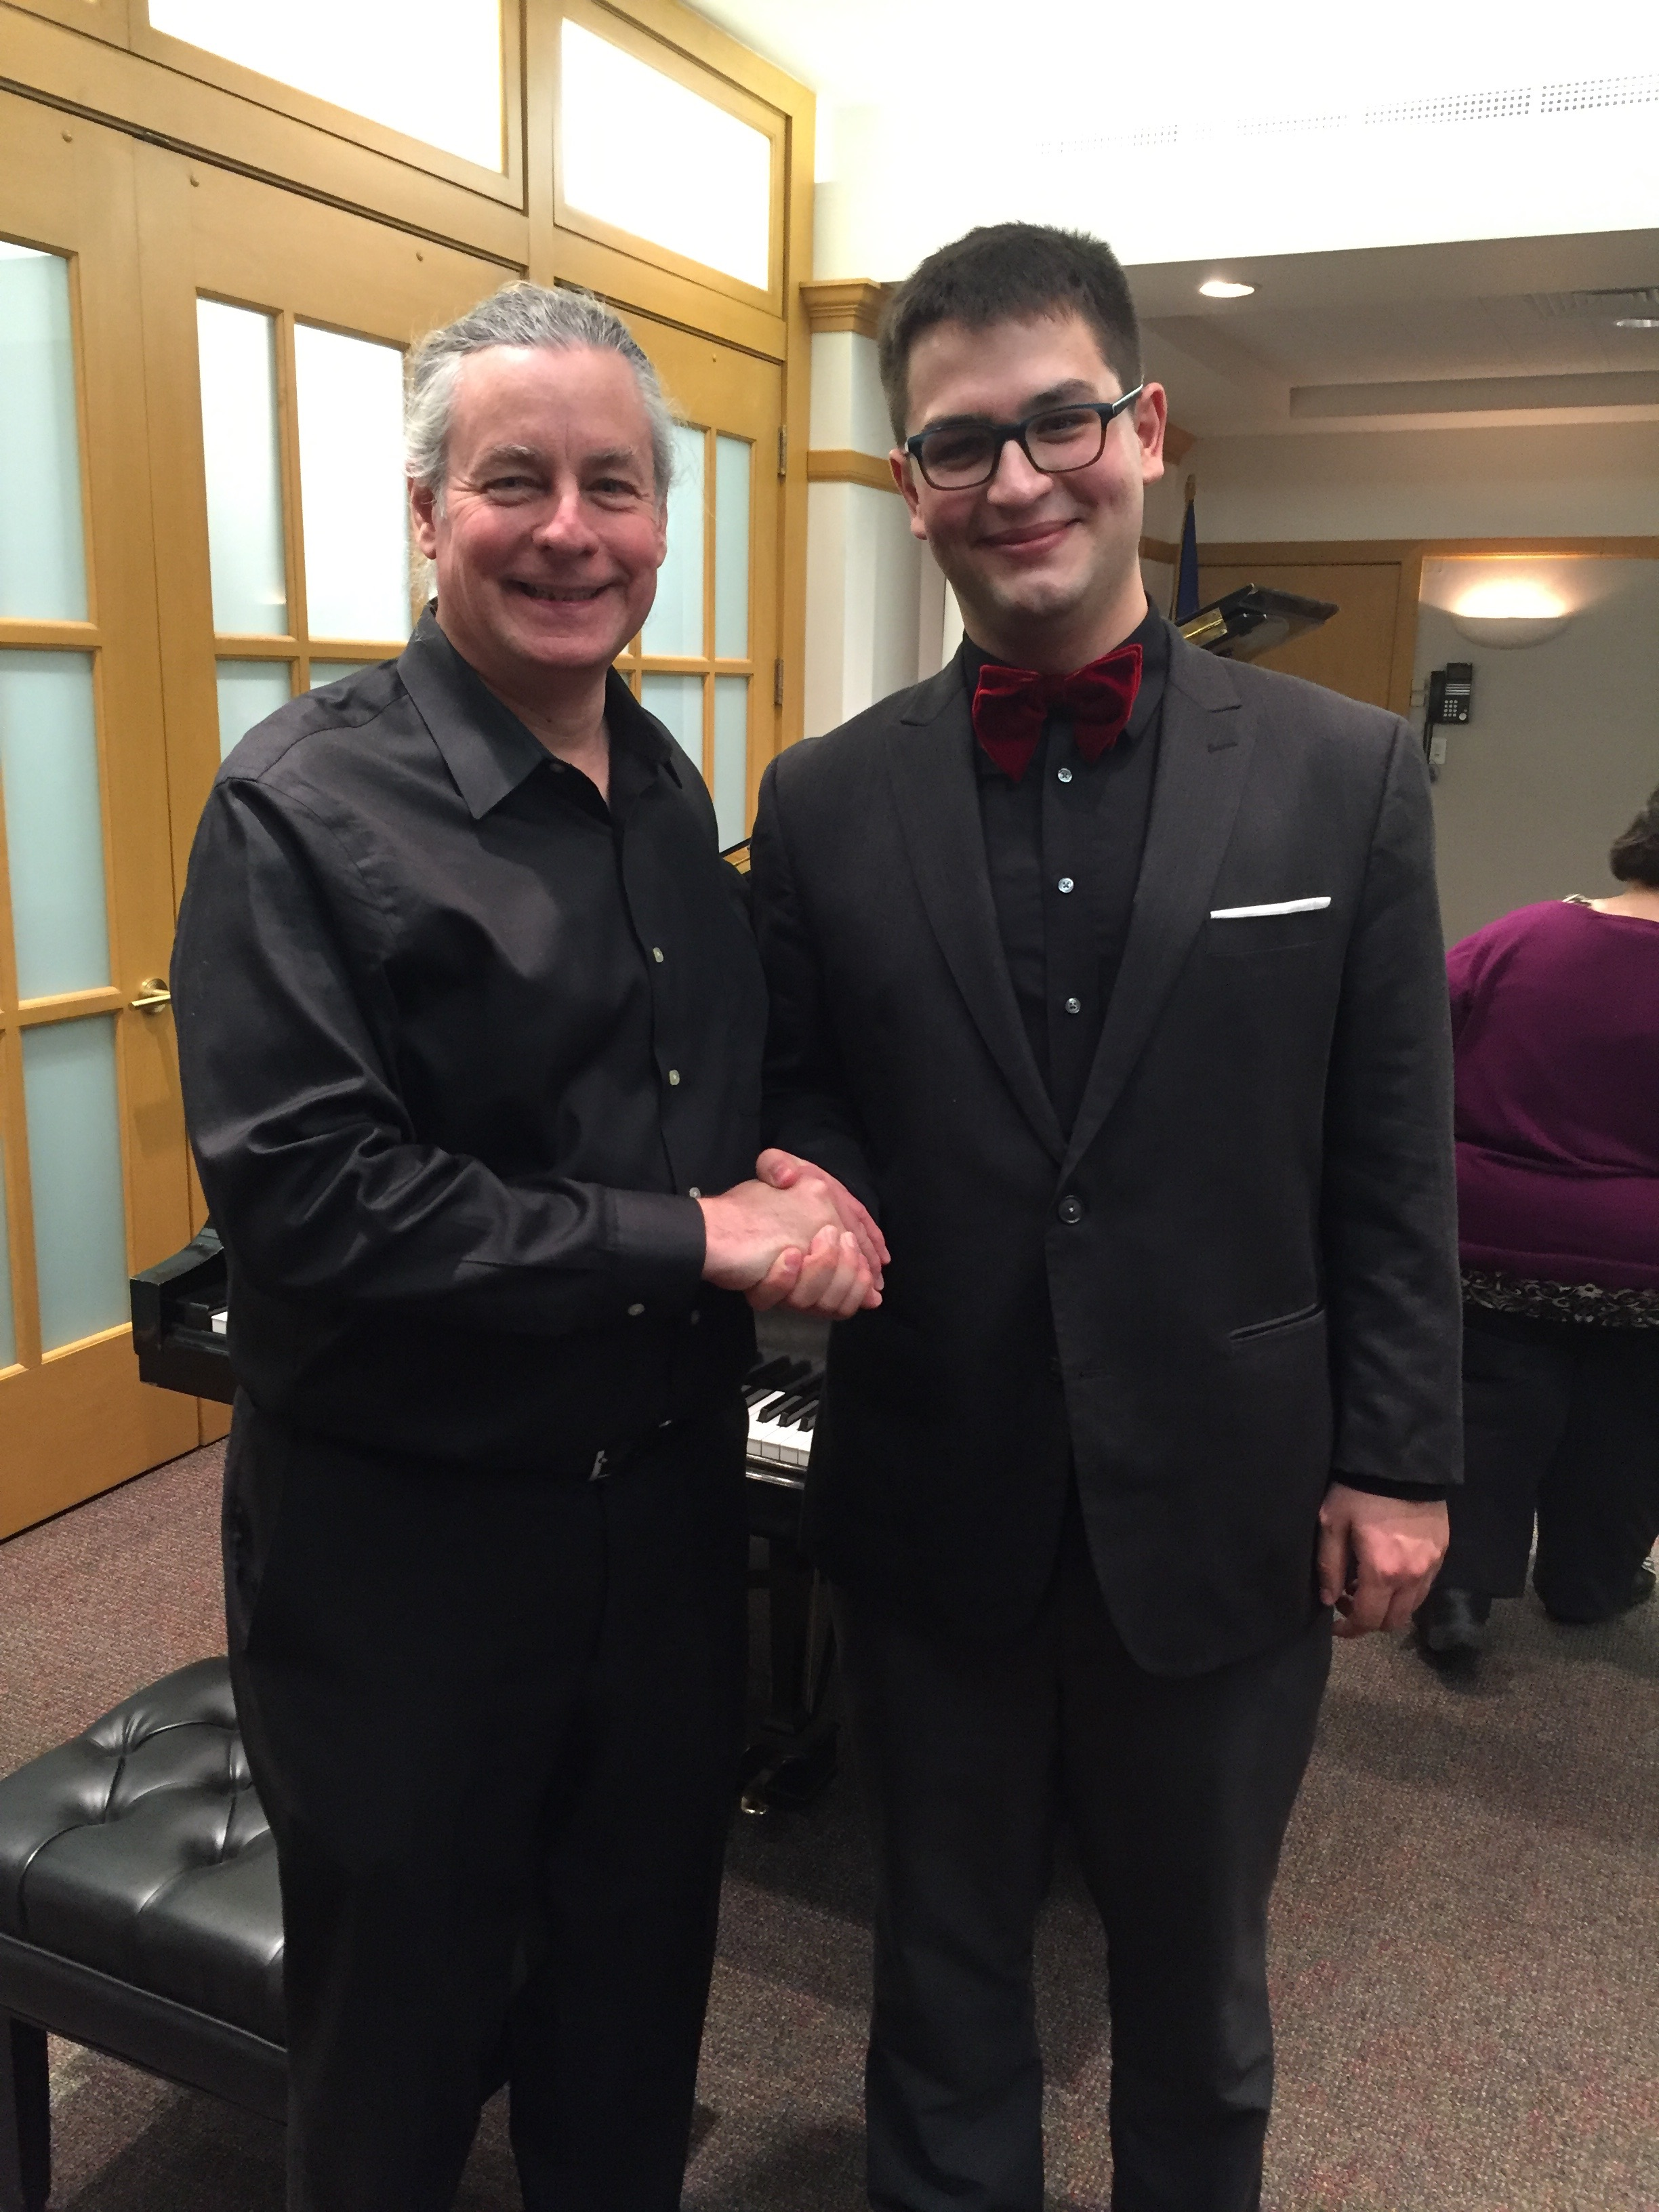 PRCO Music Director Victor Muenzer and Ethan Valentin at 'Piano Recital by Ethan Valentin'